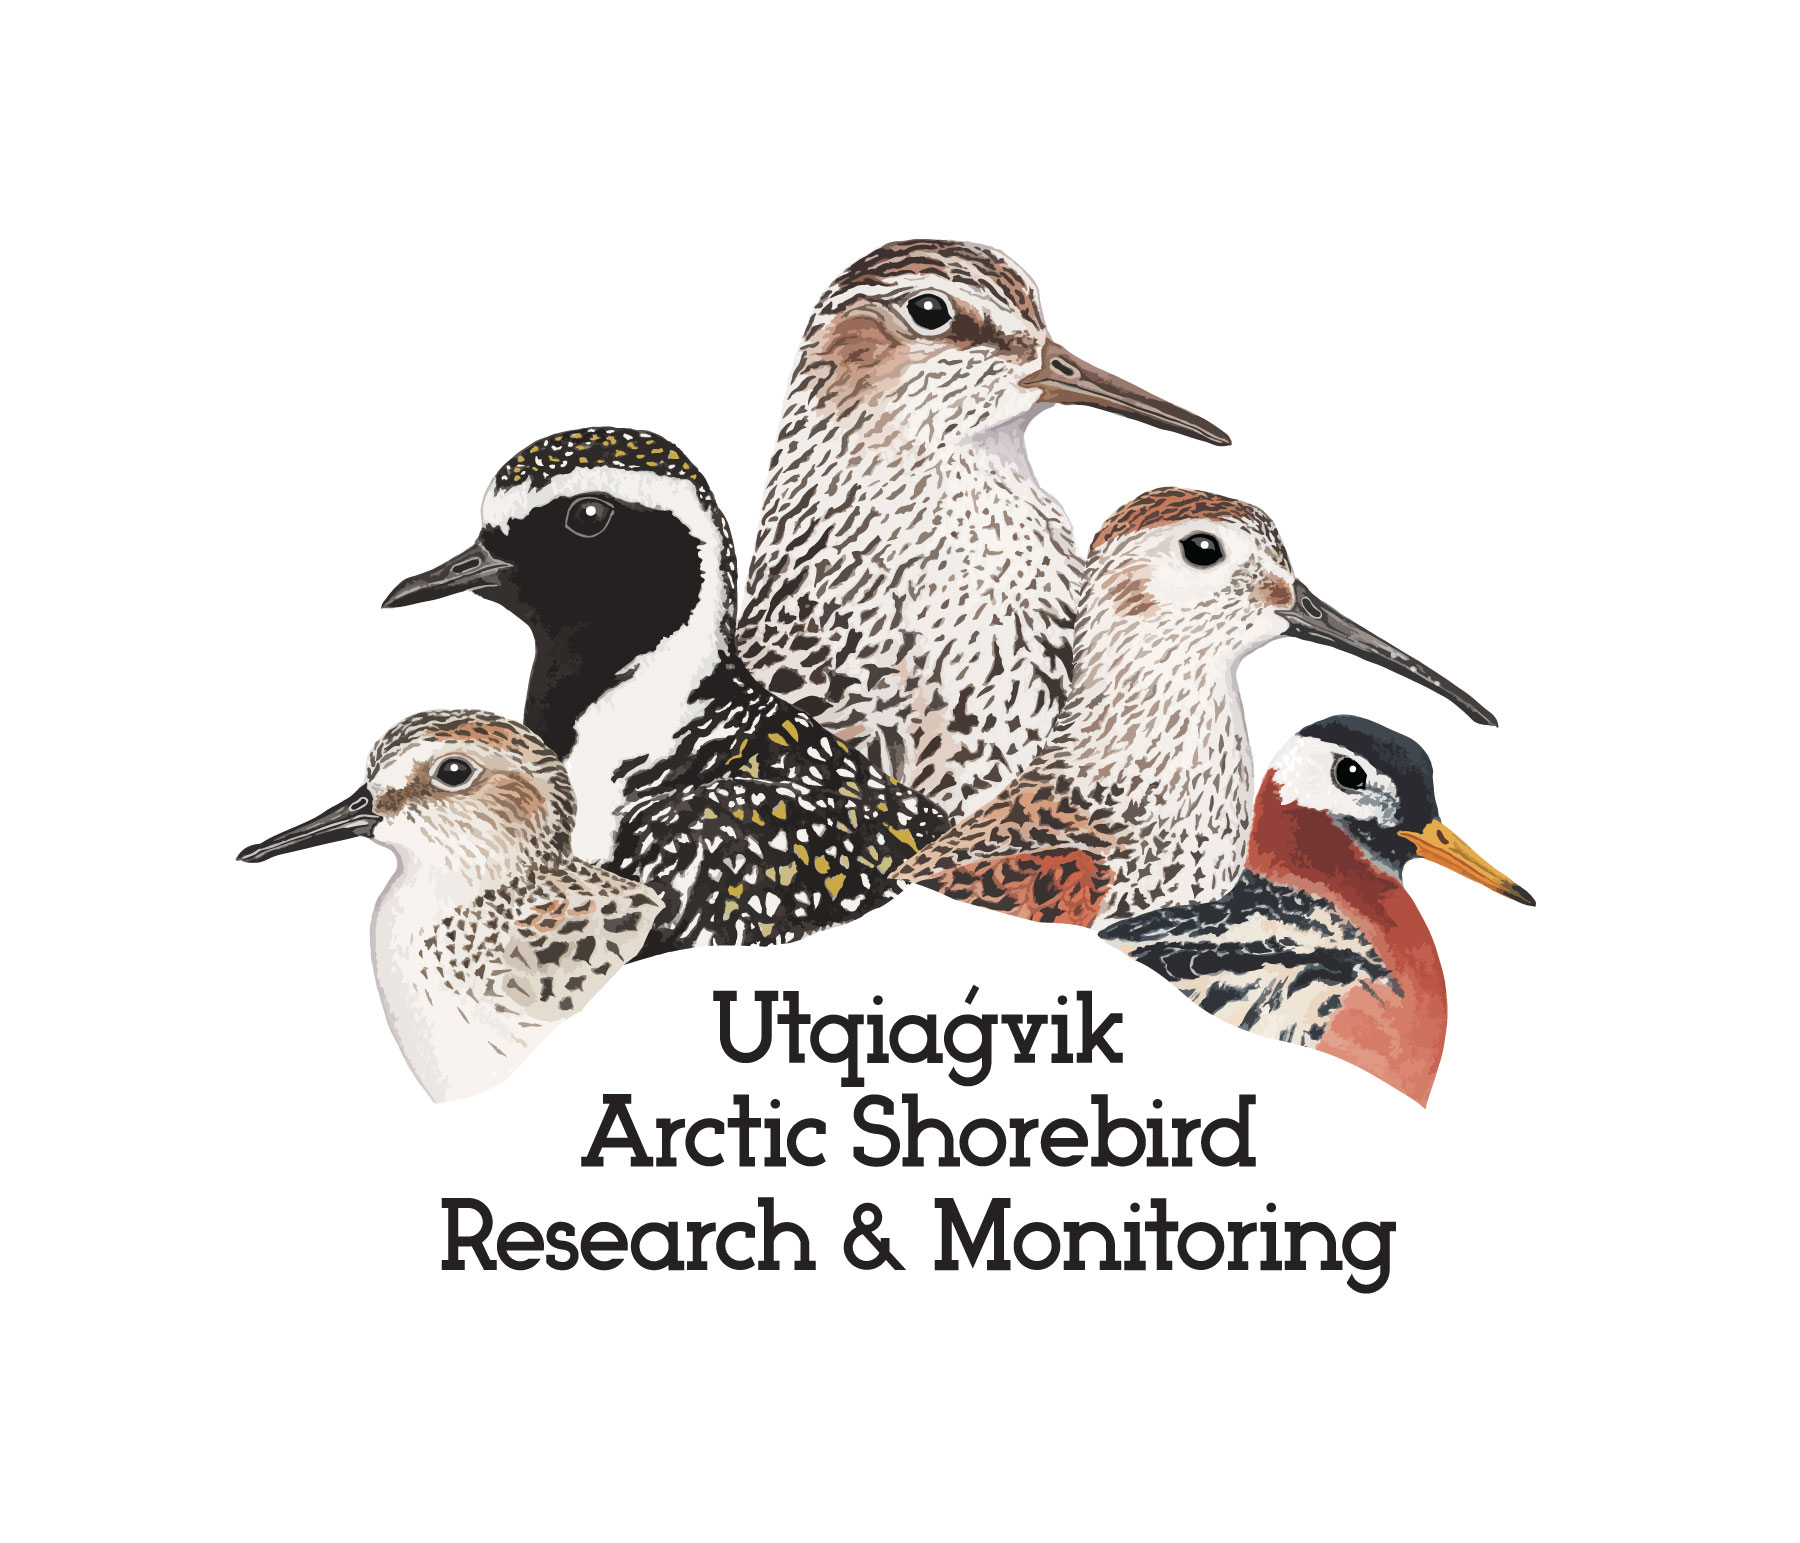 Utqiagvik Arctic Shorebird Shorebird Research & Monitoring